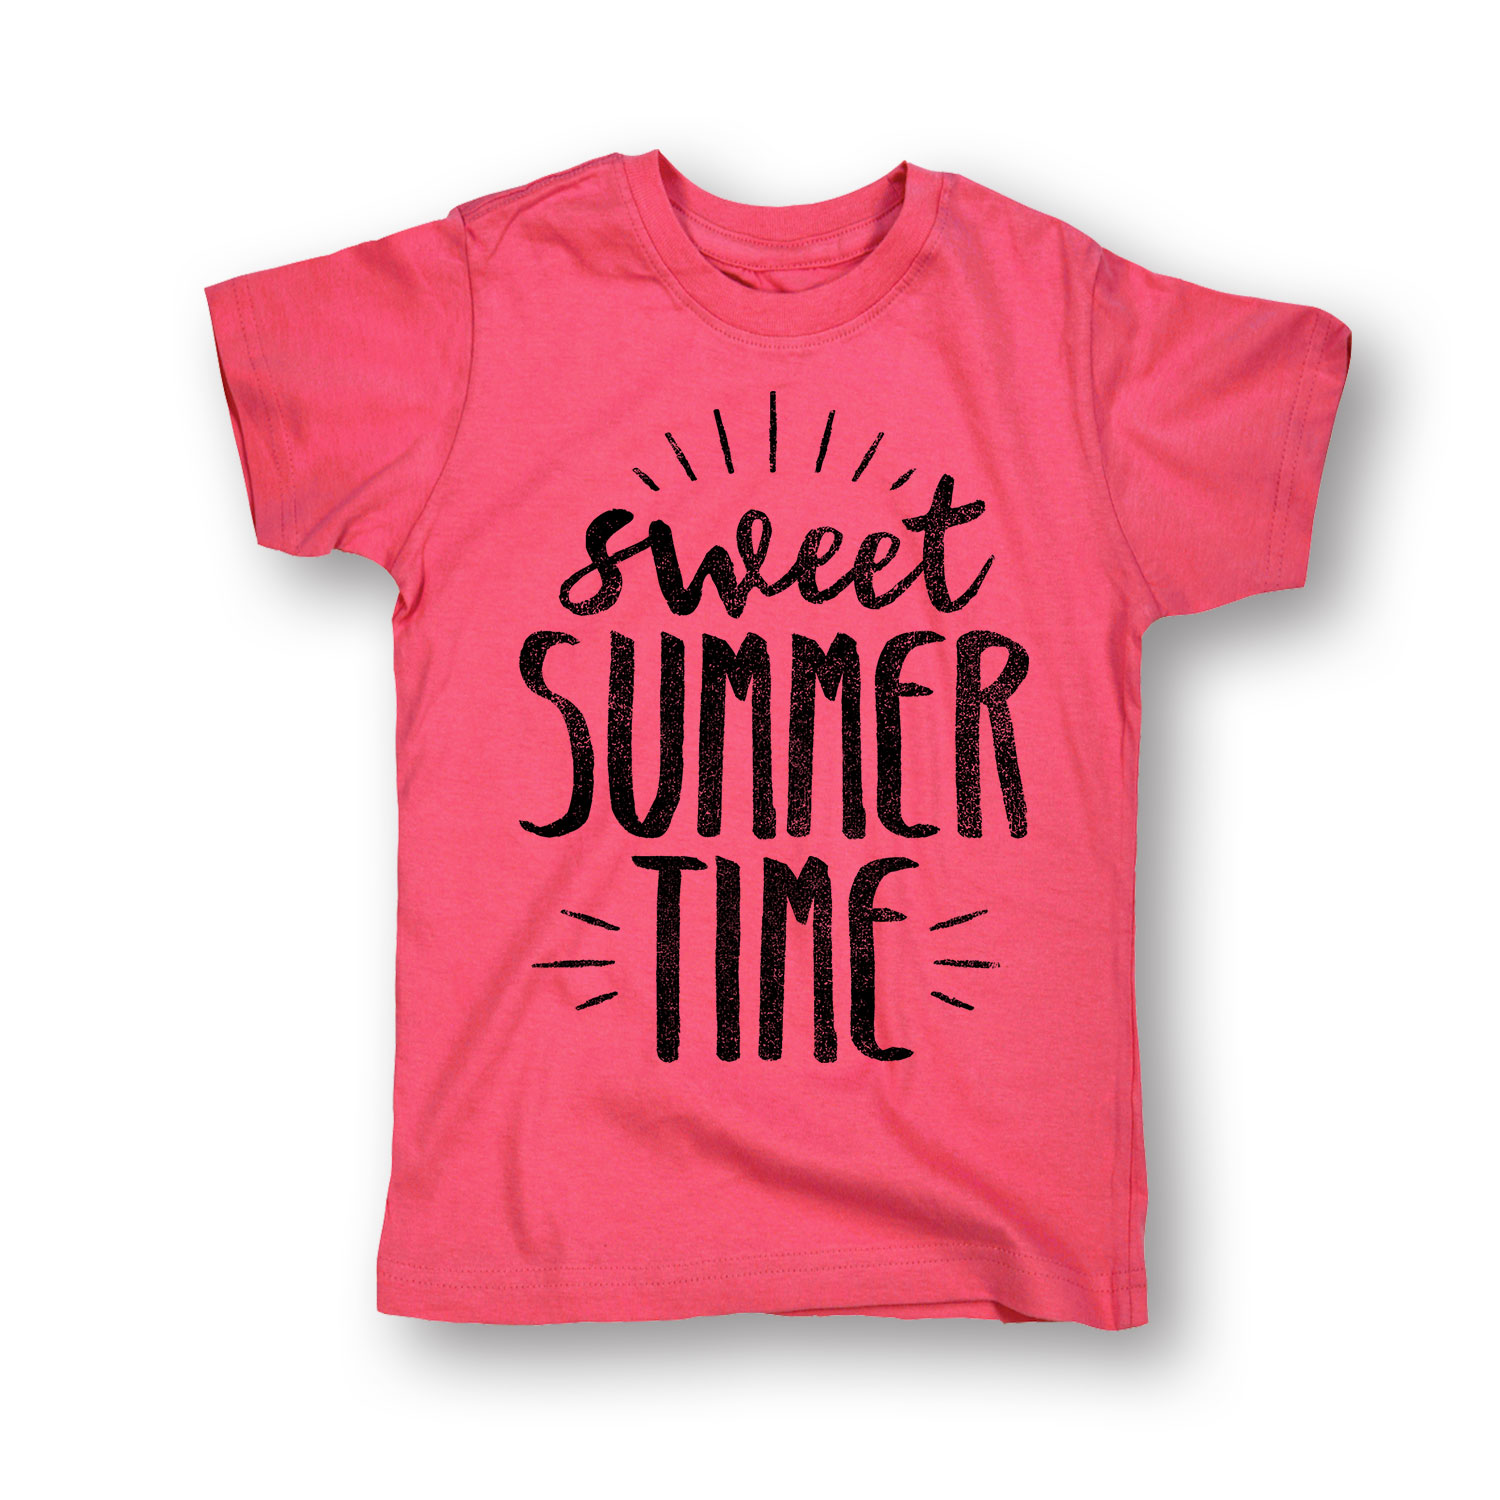 Sweet Summertime-Toddler Short Sleeve Tee